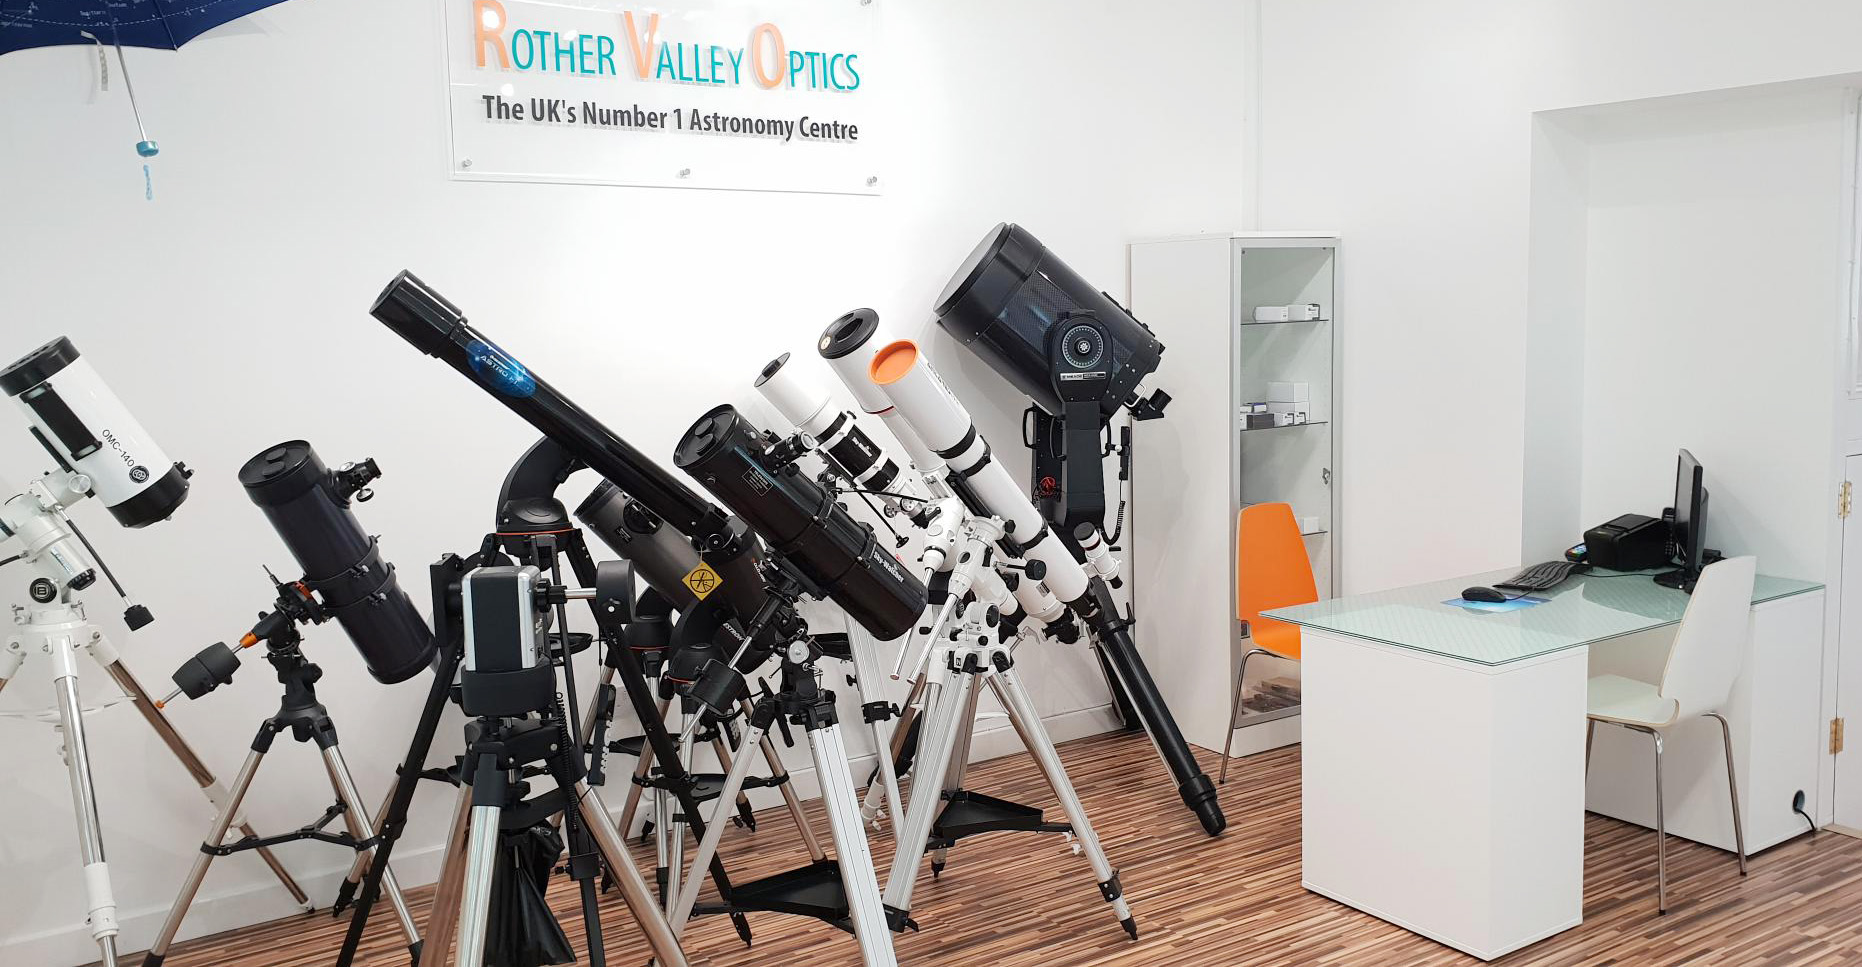 About us rother valley optics ltd